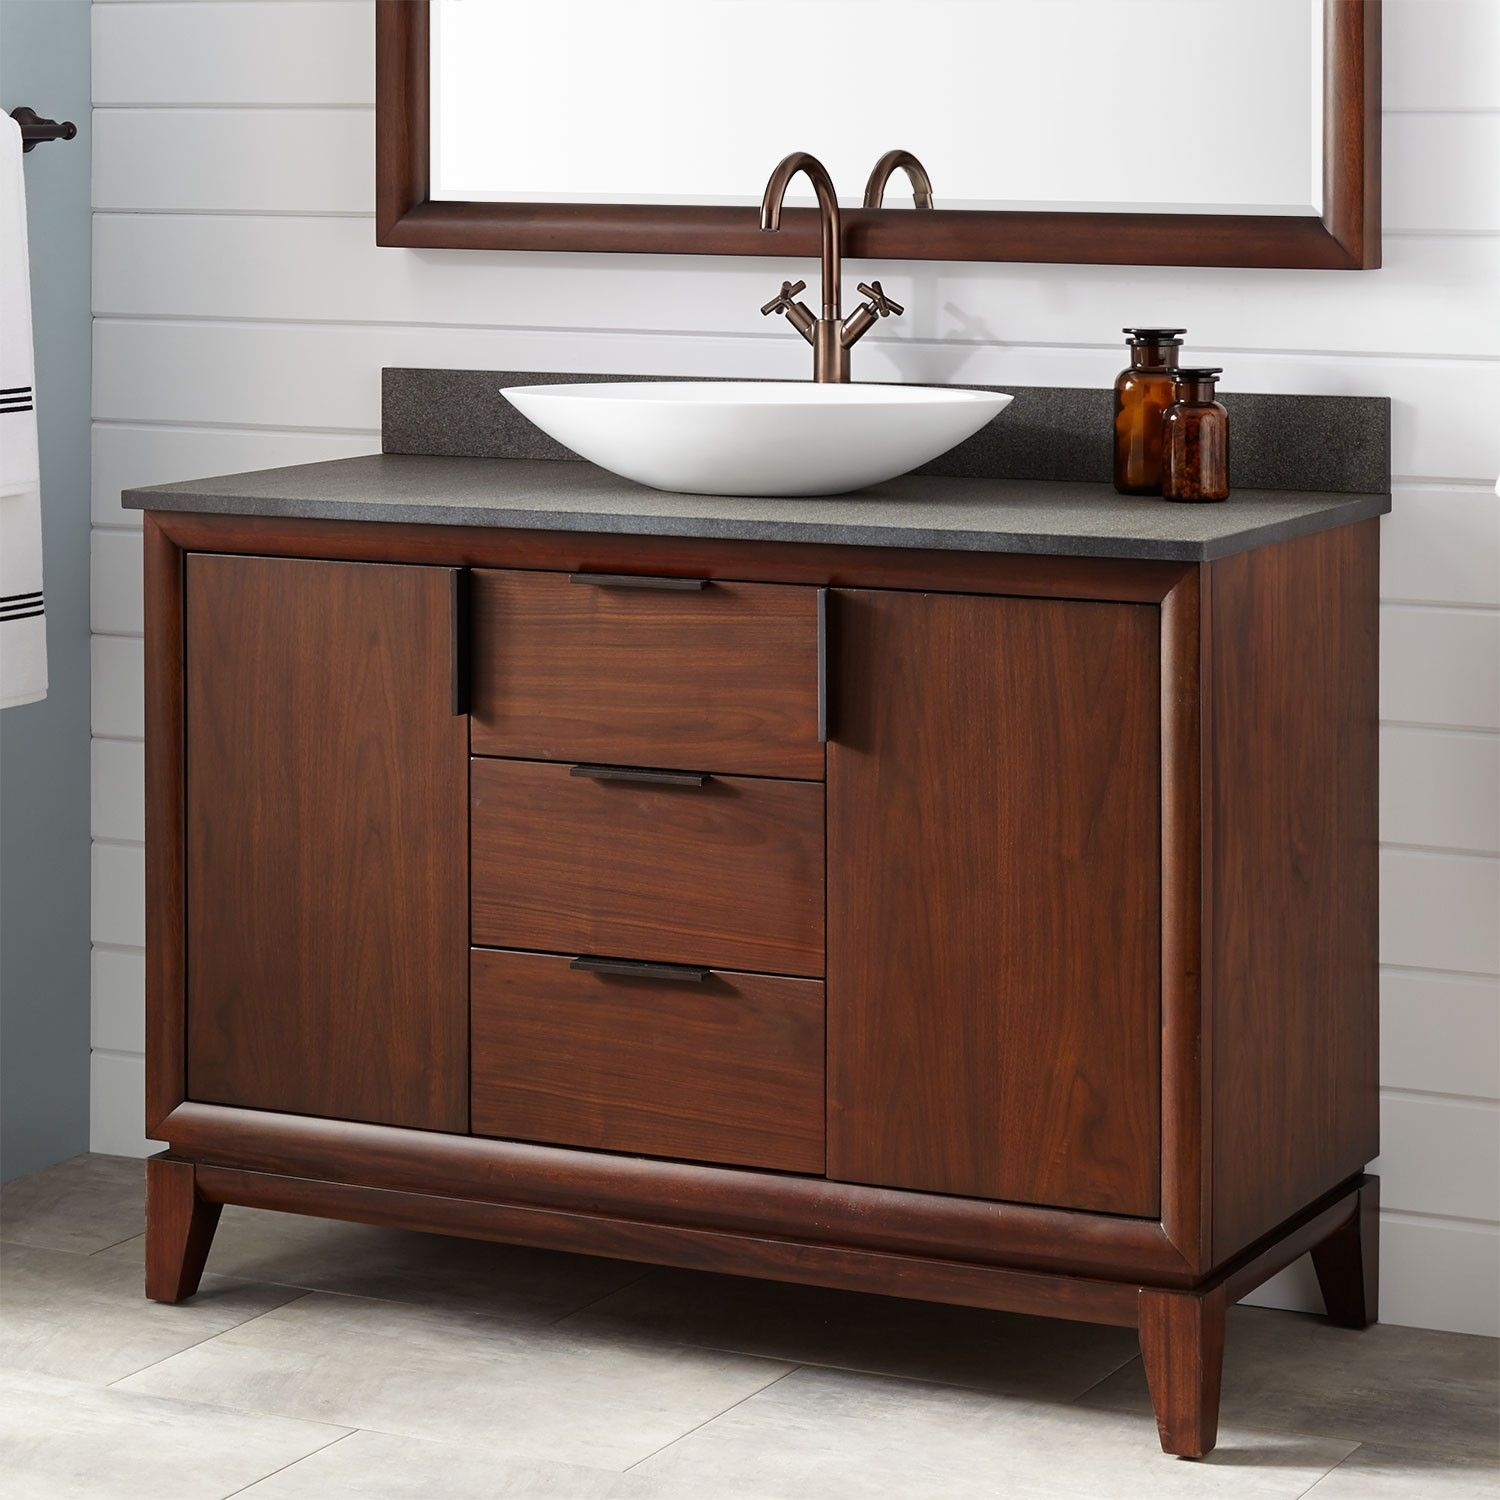 48 Talyn Mahogany Vessel Sink Vanity Light Walnut Bathroom